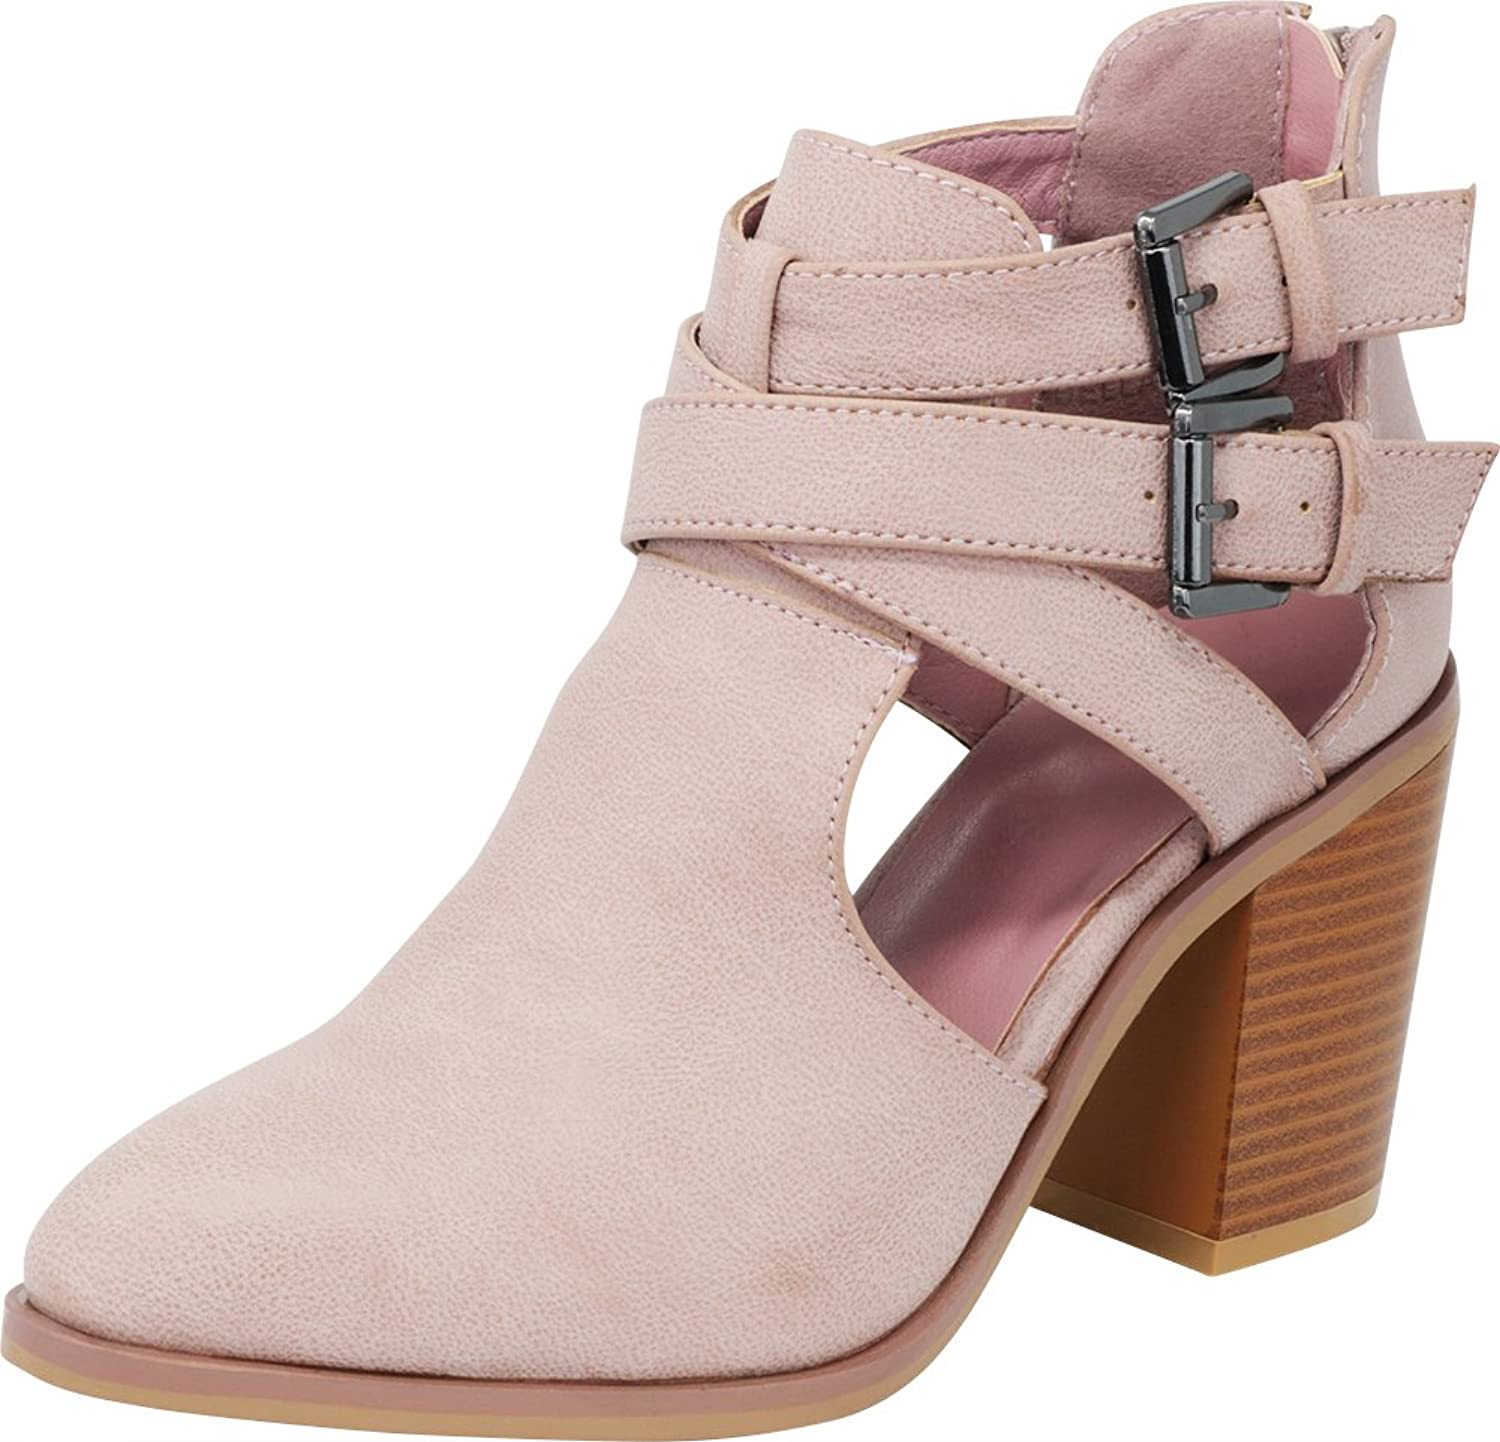 Cambridge Select Women's Buckled Strappy Side Cutout Closed Toe Chunky Stacked Block Heel Ankle Bootie